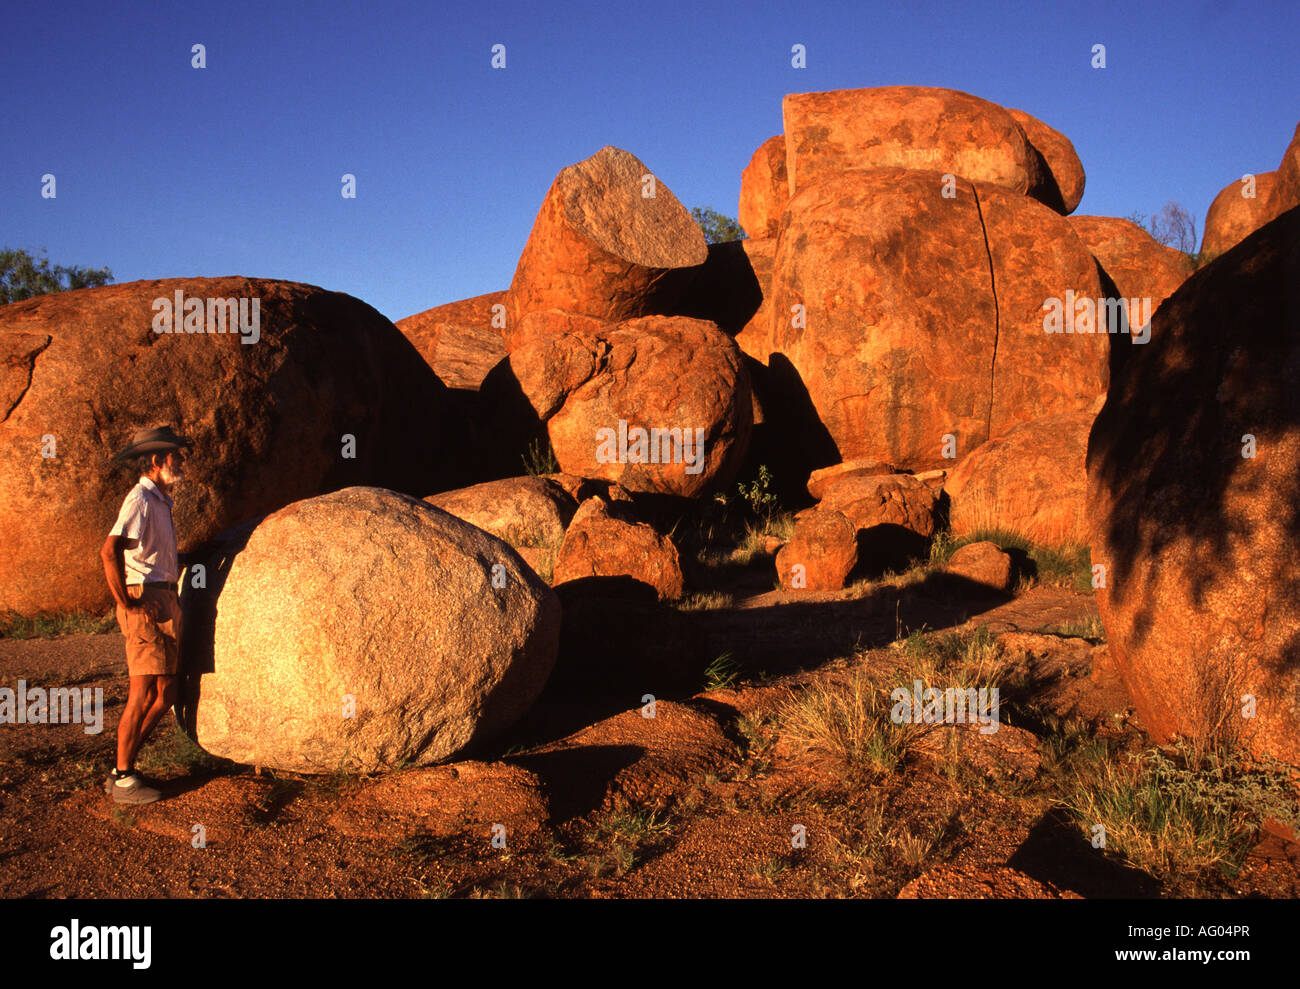 volcanically formed granite rocks known as Devils Marbles, at Devils Marbles, Northern Territories, Australia. - Stock Image